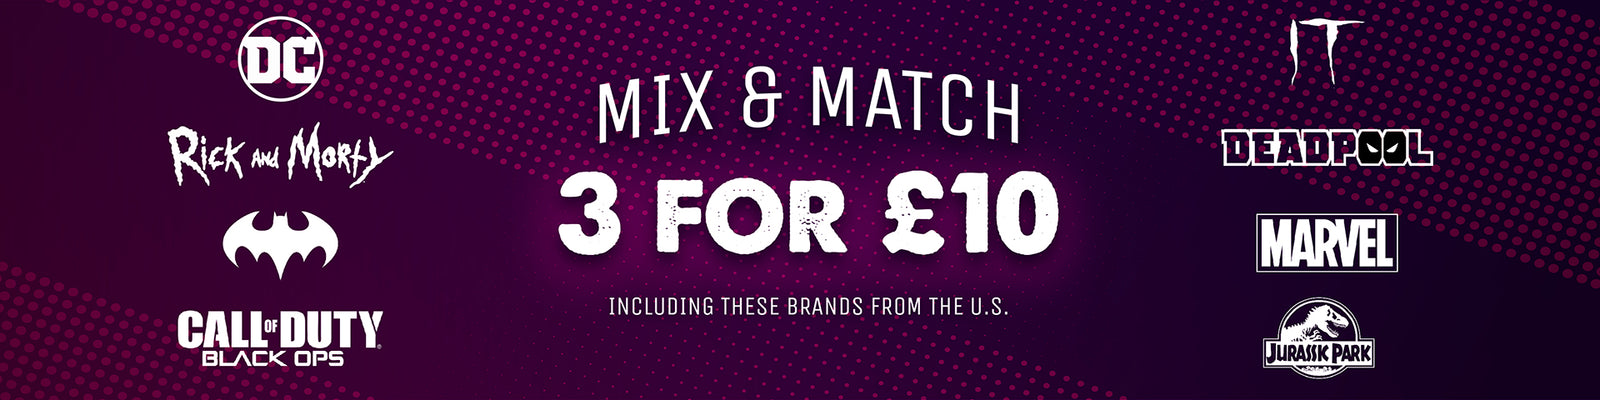 Mix & Match 3 for £10 | Fully Licensed Merch